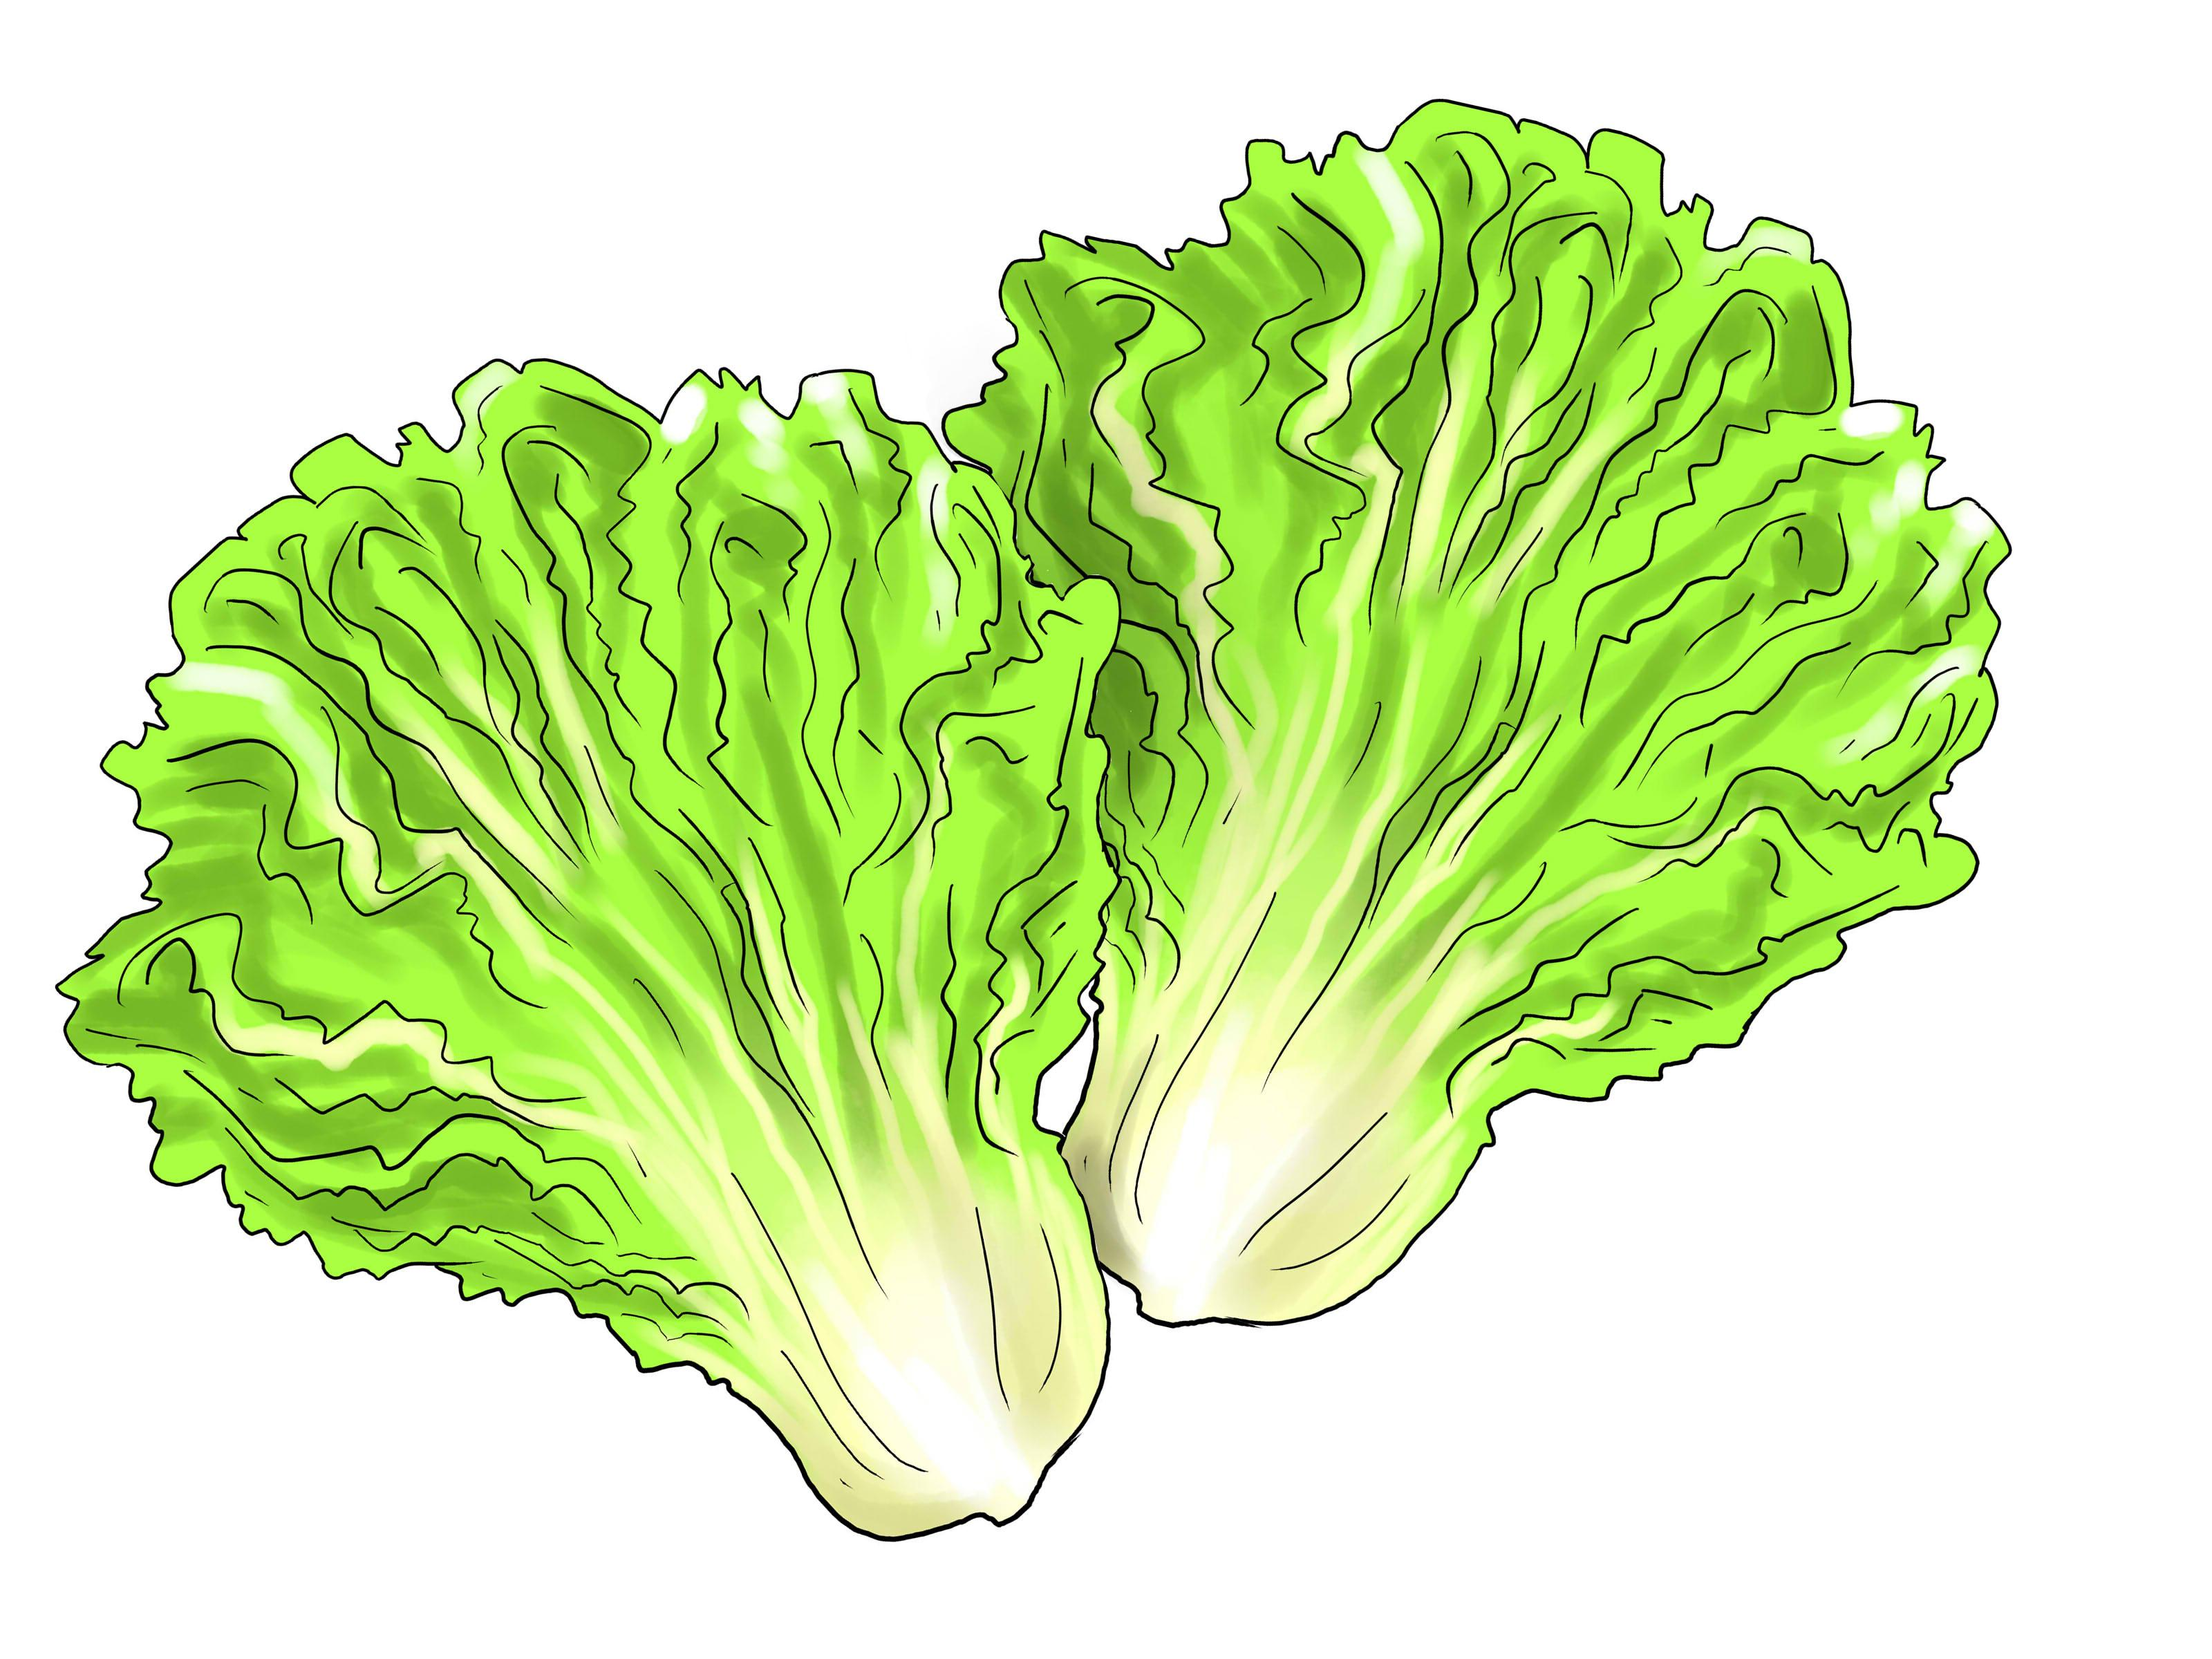 Salad leaf clipart clip Hd lettuce leaf clipart cdr - Clip Art Library clip